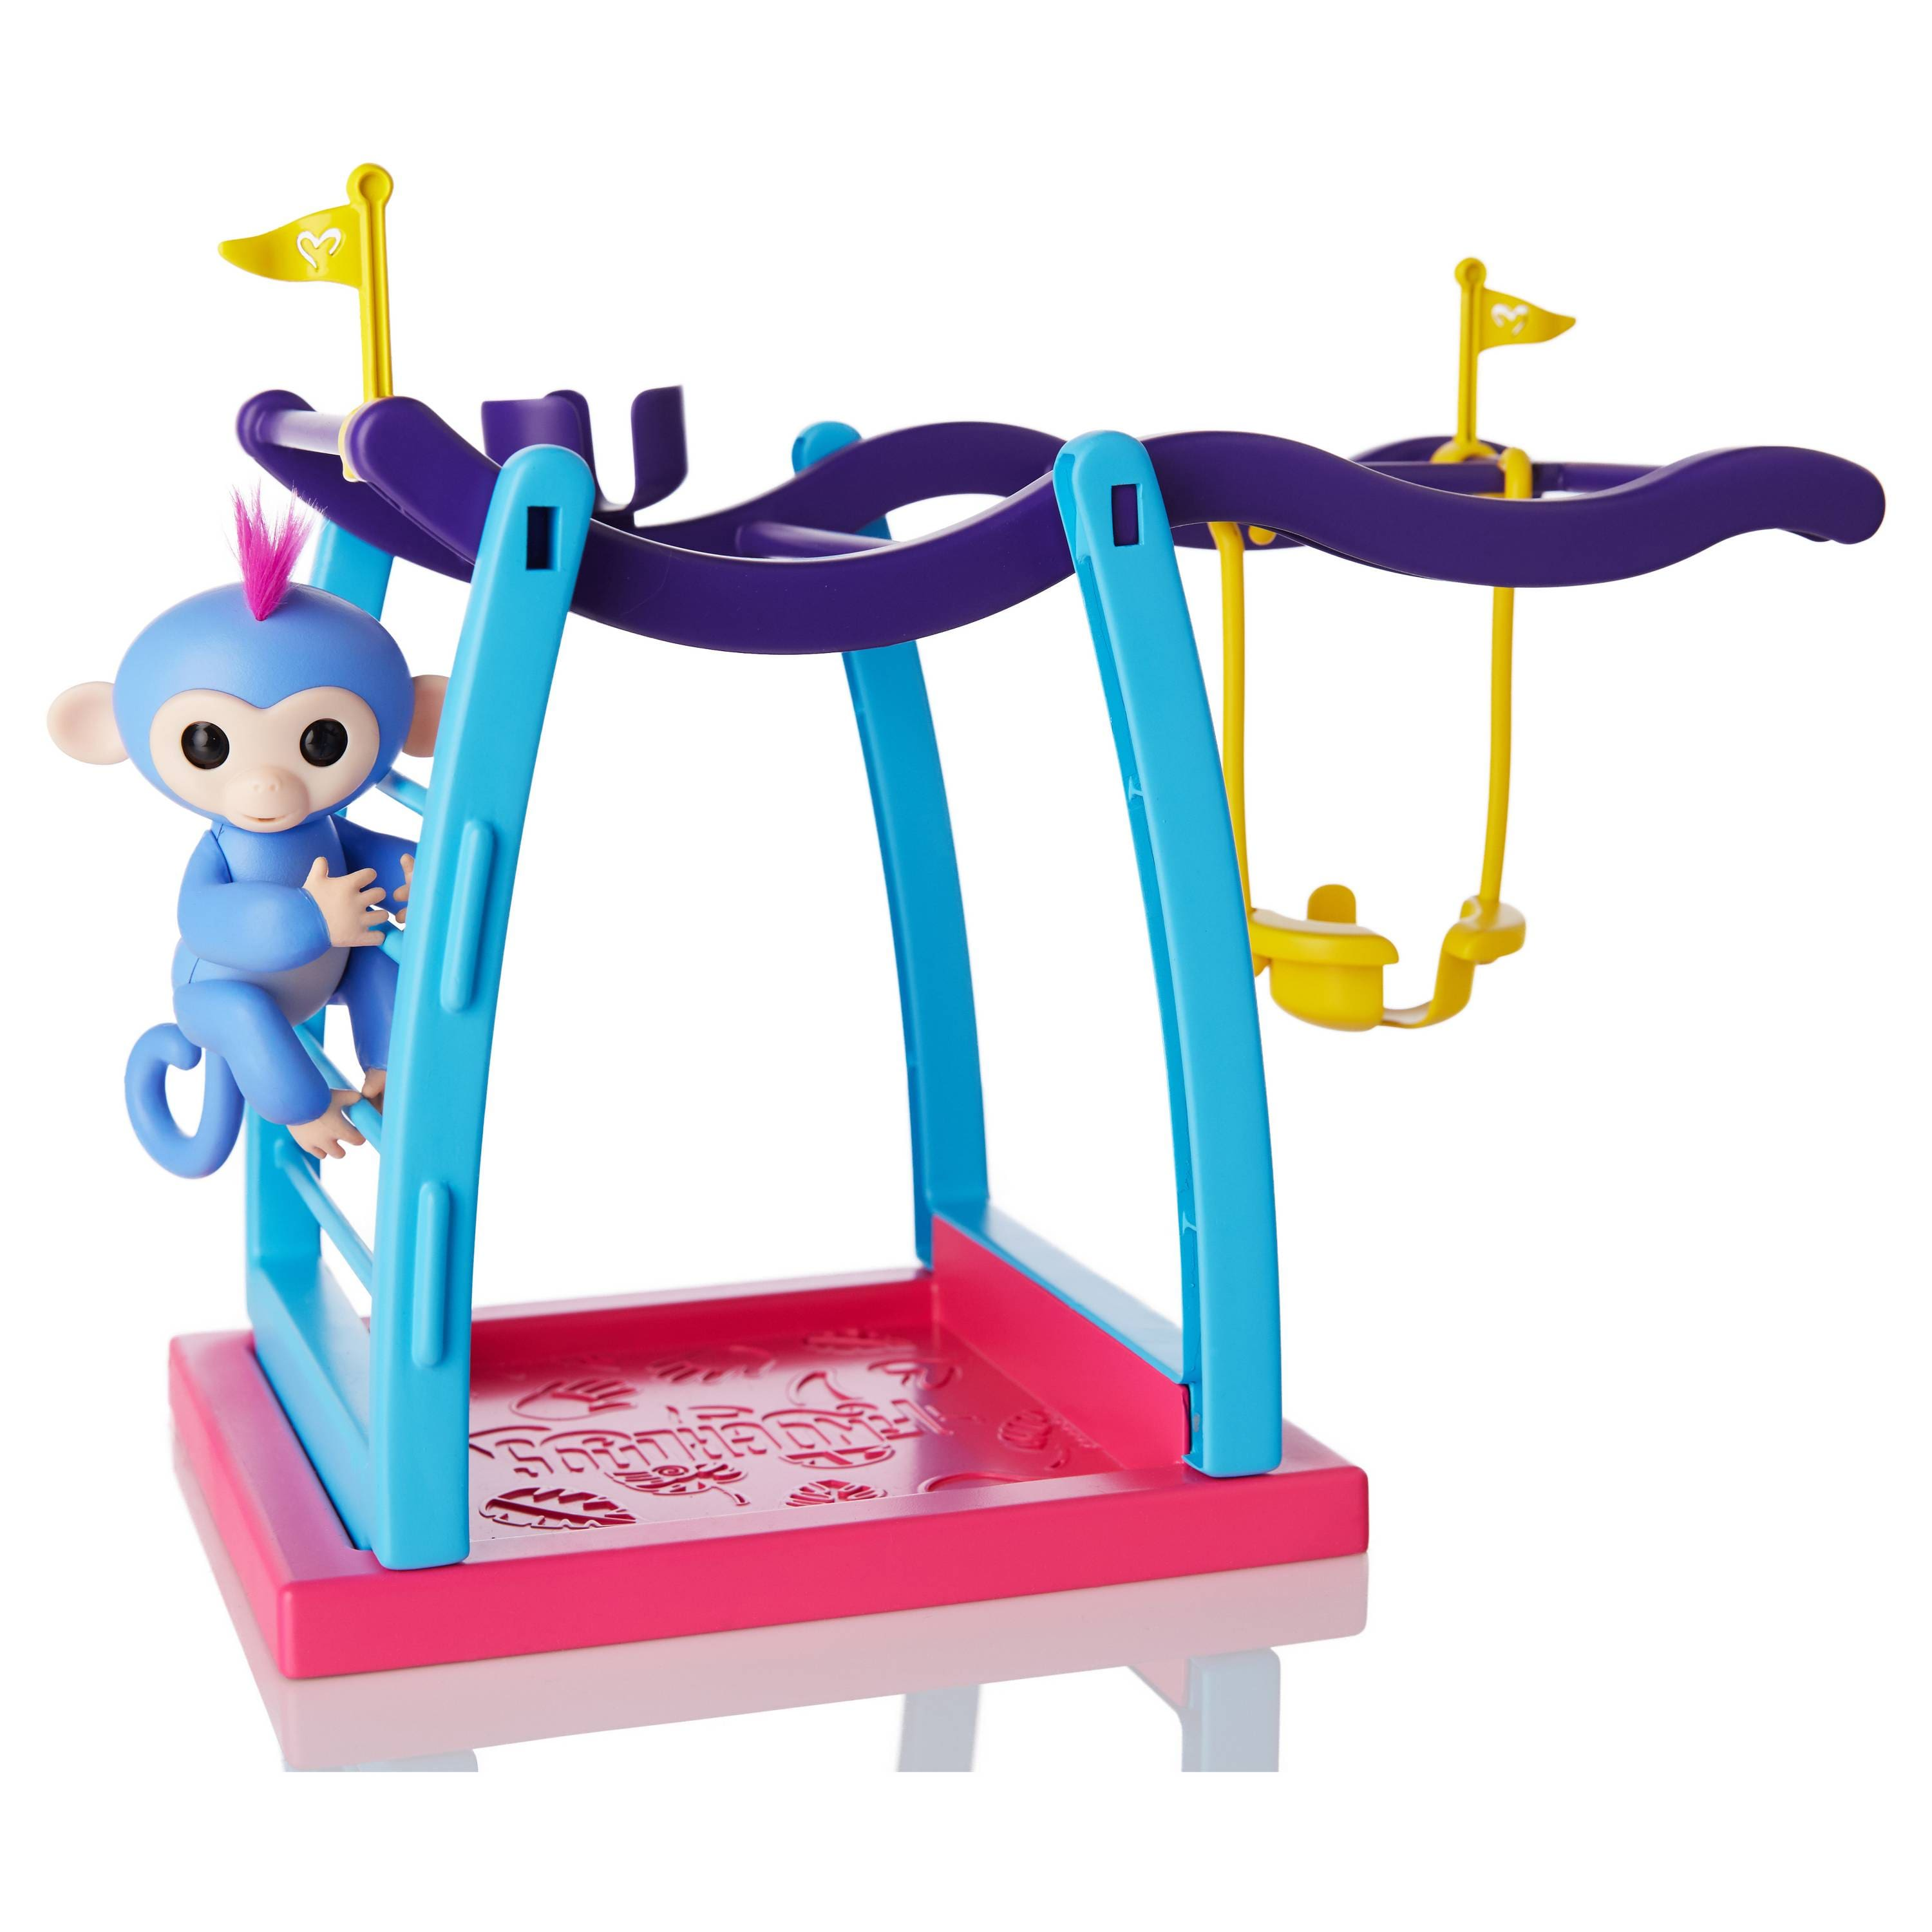 Fingerling Monkey with Monkey Bars & Hammock - TARGET $24.99 FS